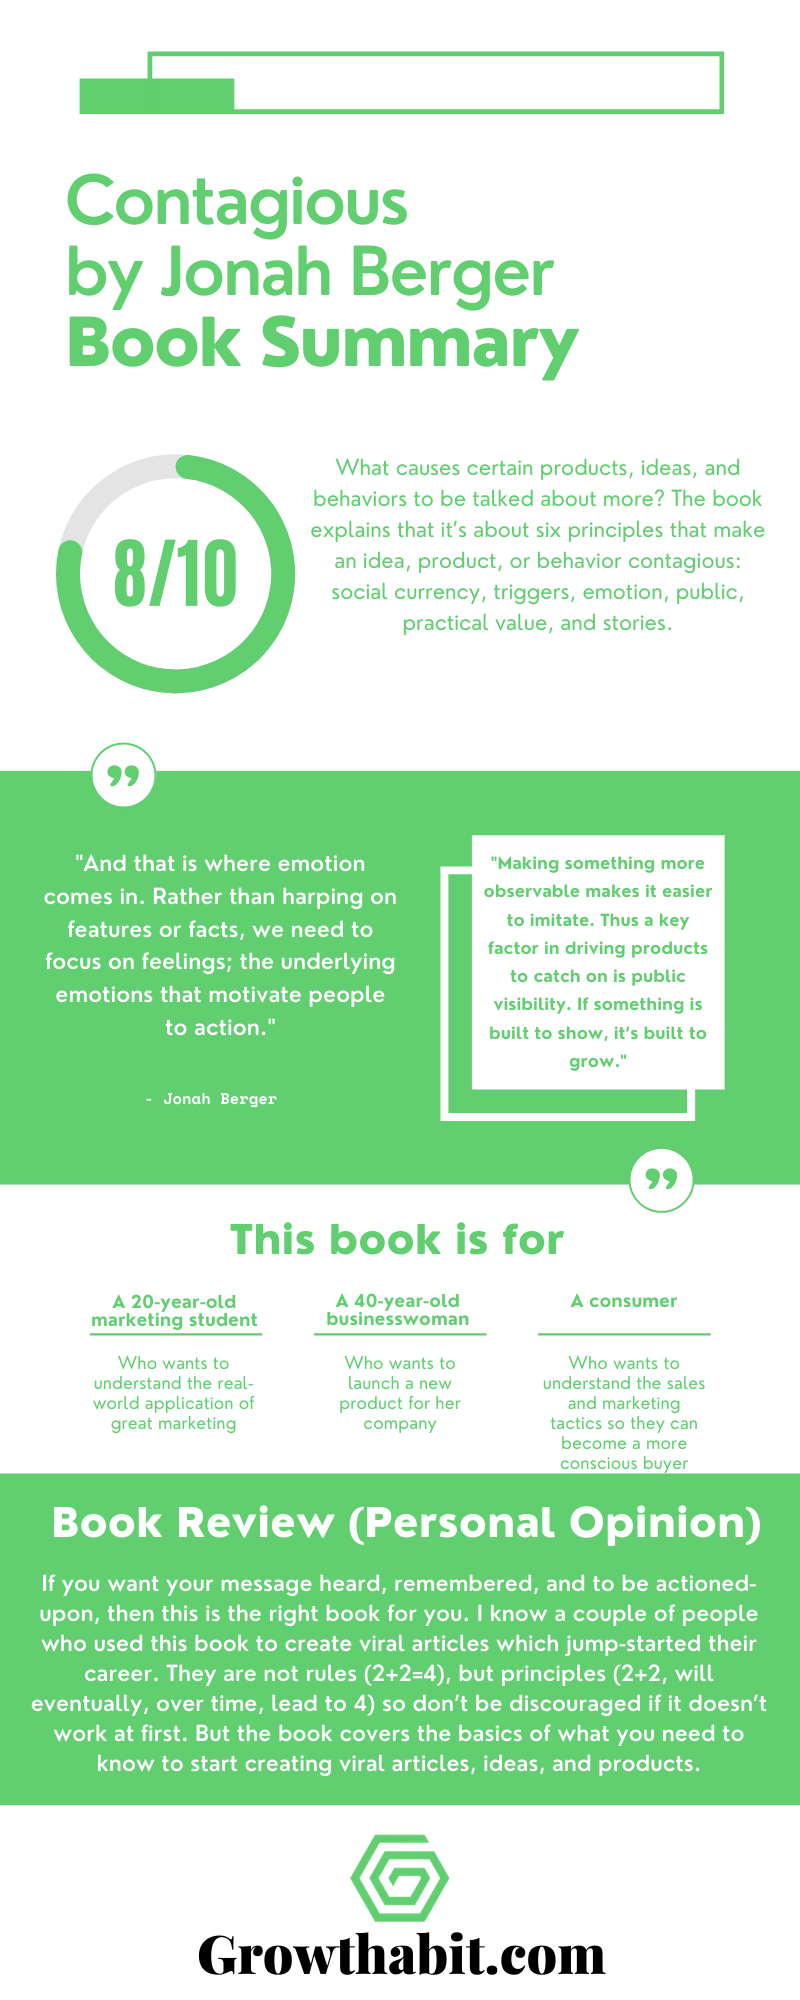 Contagious by Jonah Berger - Book Summary Infographic